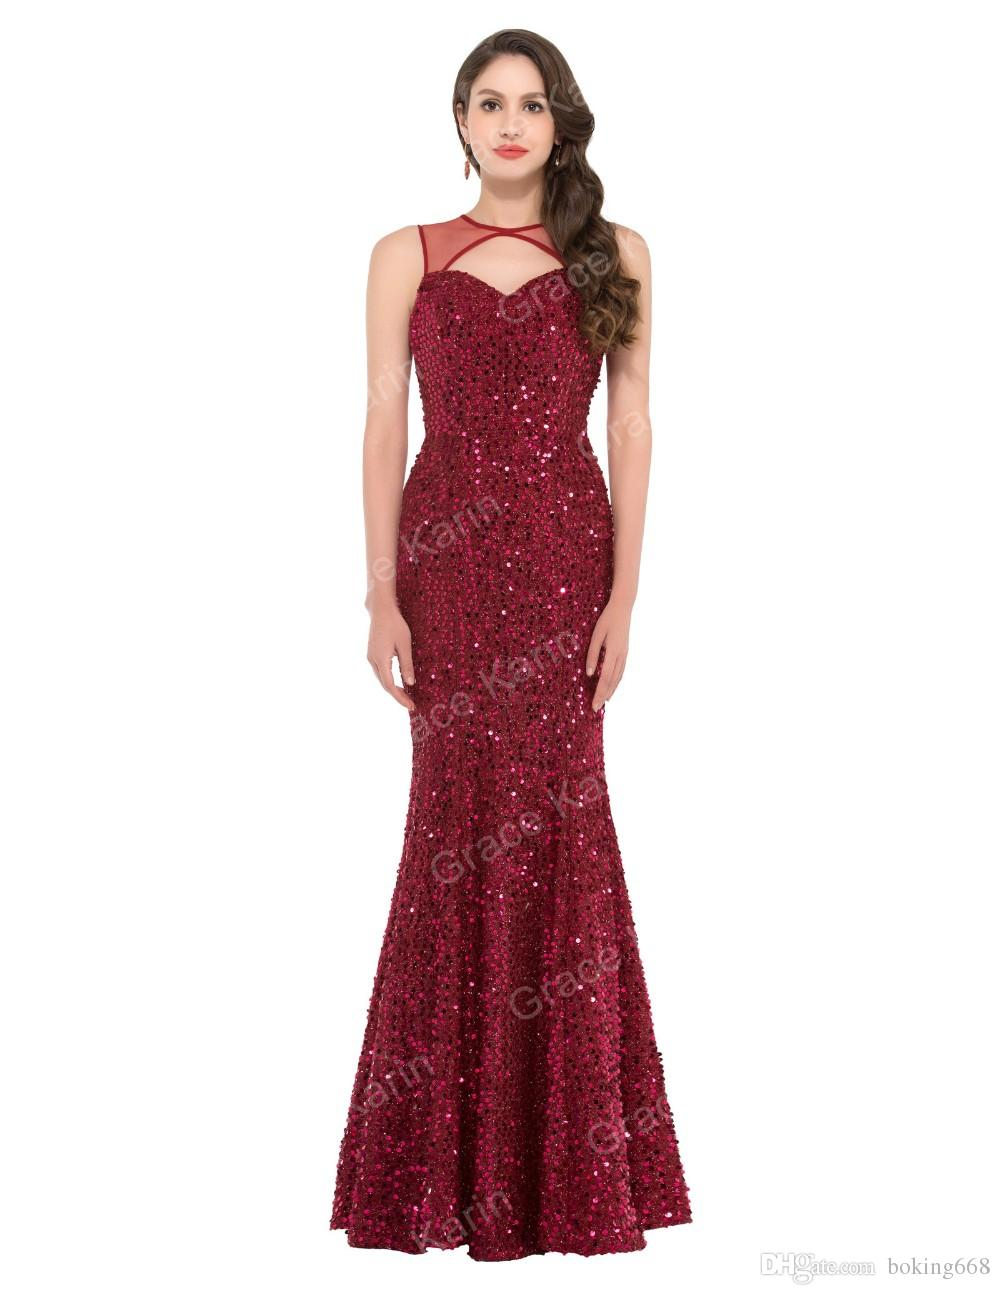 Luxury Evening Gowns Crystal Beaded Sequins Rhinestones Sexy Mermaid Evening Dresses Abendkleider 2019 Red Backless Prom Dress Cheap